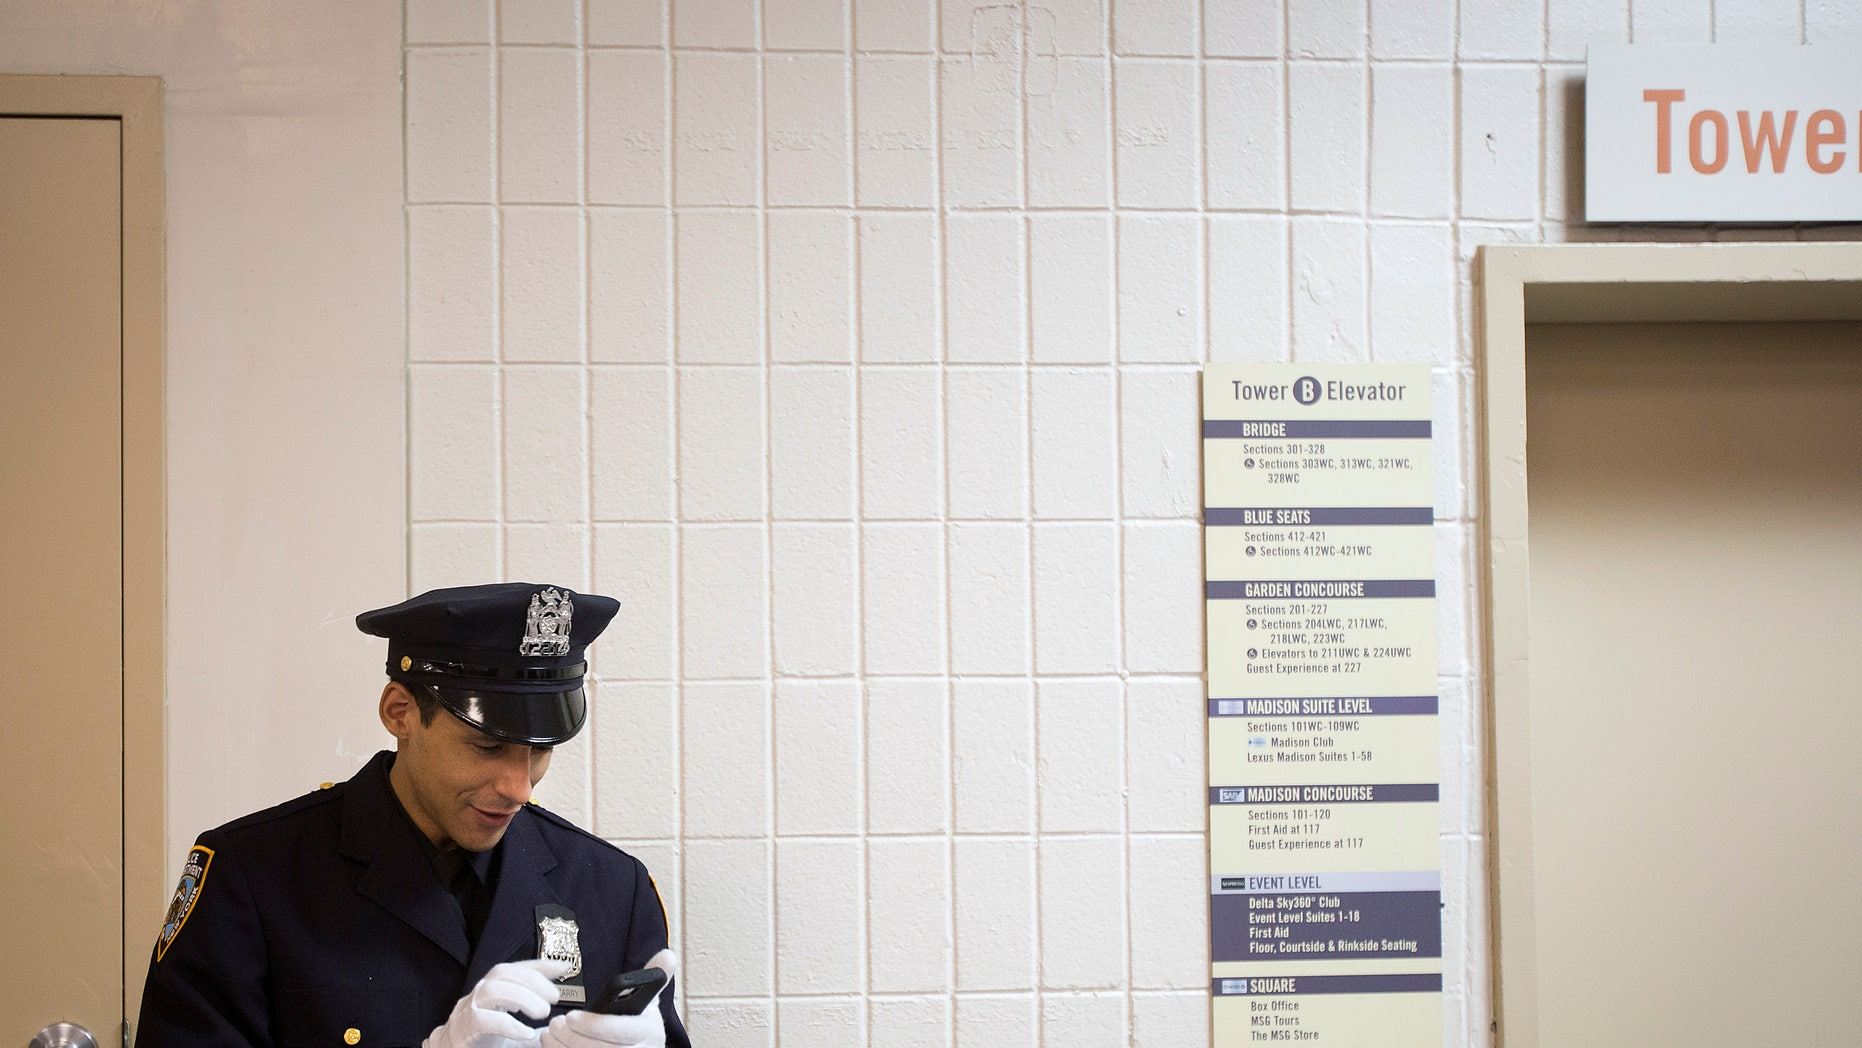 File photo - A New York Police Department graduate video chats on his smartphone backstage before his induction ceremony at Madison Square Garden in New York, December 27, 2013. (REUTERS/Carlo Allegri)